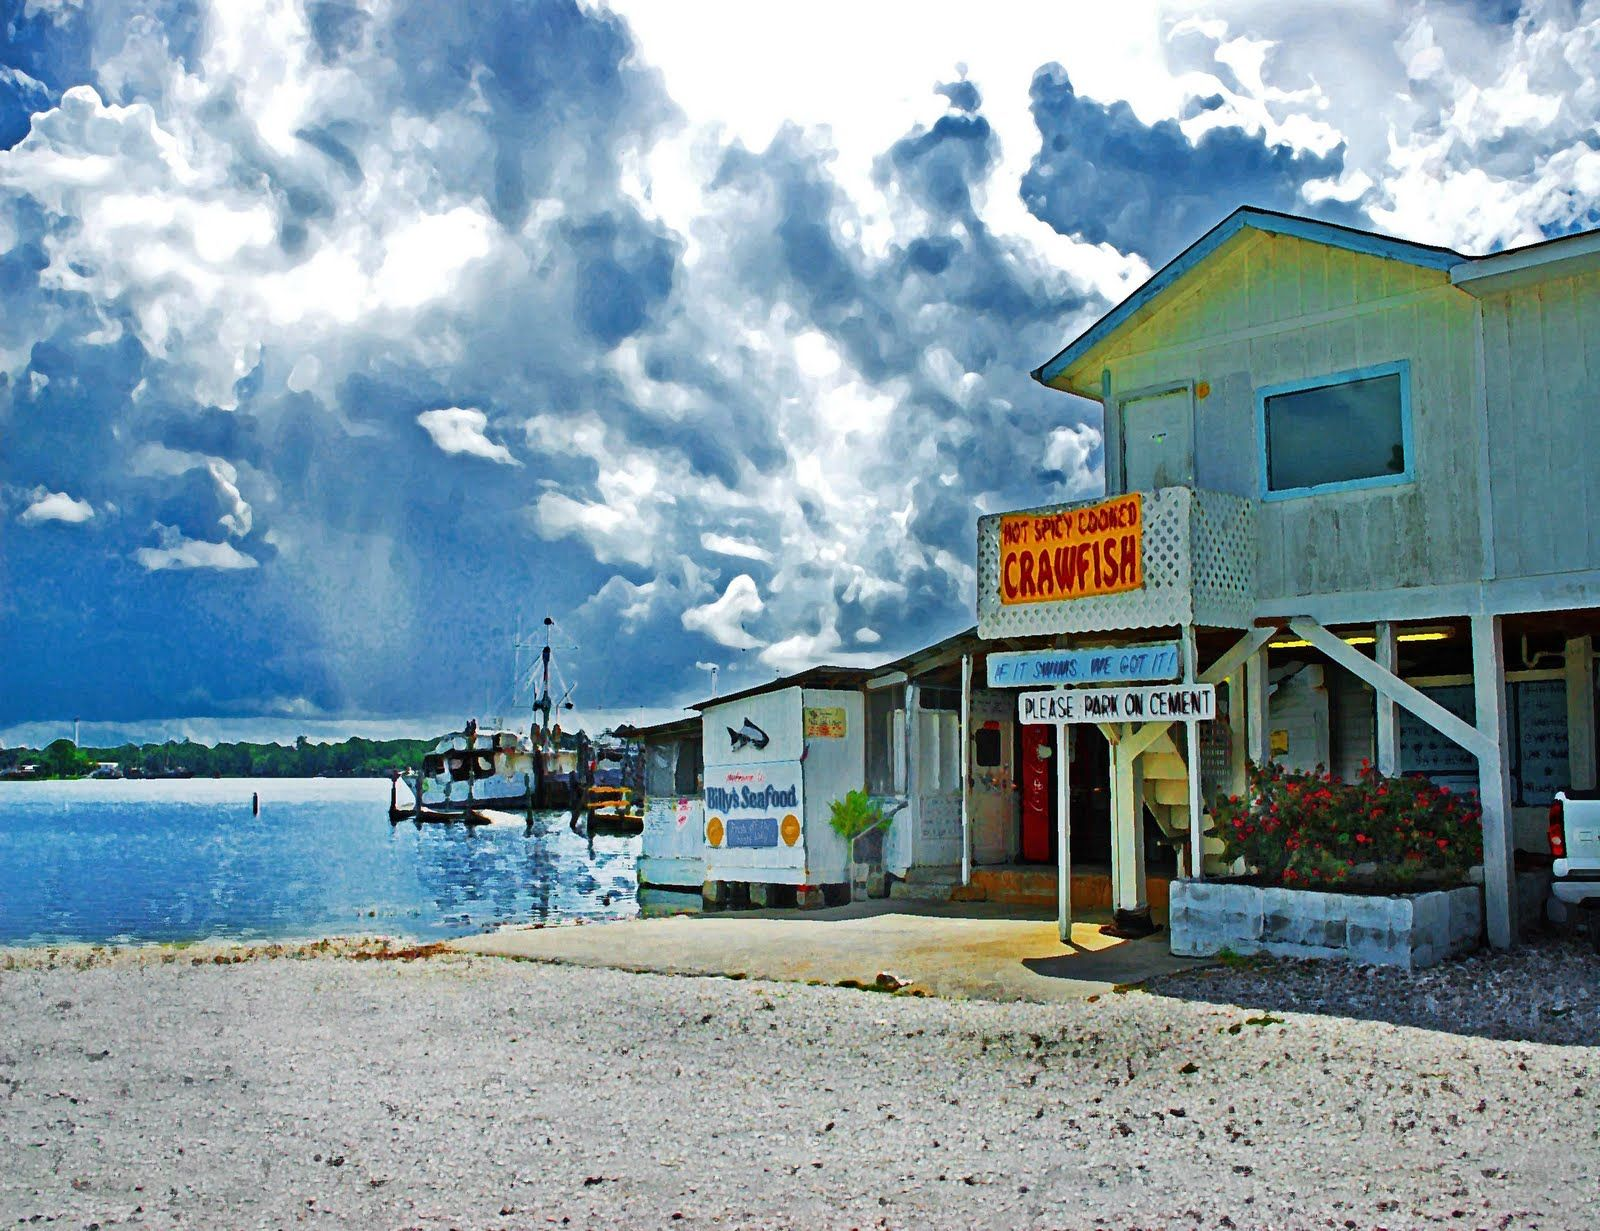 Billy\'s Seafood - Bon Secour, AL Google Image Result for http://2.bp ...